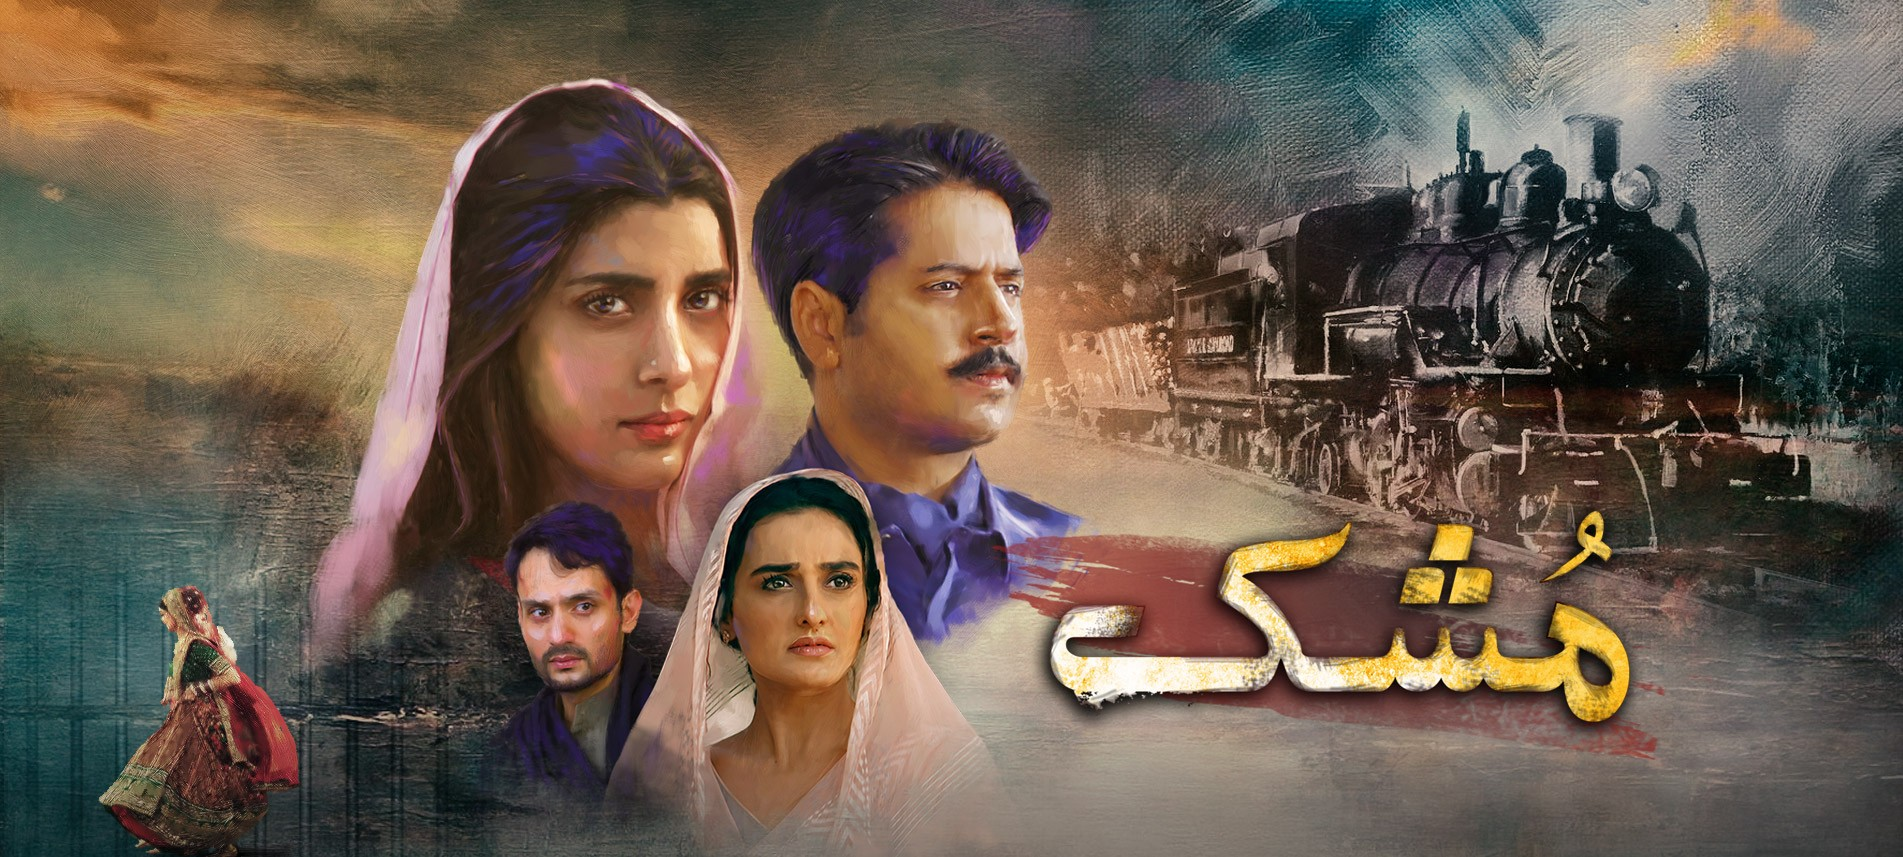 """Pakistan Drama Industry is producing content rapidly for the small screen and every project has its own charm. Different channels in which mainly ARY Digital and Hum TV are included; they are bringing new dramas for viewers. Among so many hit projects, some have touched the peak of fame while others made space in hearts. So, to enhance your watch list, here we have four of the must watch new dramas you shouldn't miss. Mushk This drama serial's teaser looks like something big is coming our way. Drama serial Mushk is written by our very own """"Bhola"""" i.e. Imran Ashraf. The cast of this drama includes Urwa Hocane opposite to Imran Ashraf, Usama Tahir, and Momal Sheikh. Mushk is directed by Ahsan Talish who also directed blockbuster drama Suno Chanda. The story of this drama is all about love and how one can hide as well as stay away from the aroma of love. Drama serial Mushk will be on-aired every Monday at 08:00 PM only on Hum TV. Don't forget to watch as first episode is already on the screen now. If you have missed it, watch it now here. Stay tuned! Prem Gali Drama serial Prem Gali is a romantic comedy with a huge star cast. The team of super hit drama serial Aangan has joined hands once again to bring something unconventional and entertainment package for the viewers. The story plot of this drama mainly revolves around Hamza and Joya's love story but their journey is going to be full of surprises. A number of people around them and their vibrant personalities will be creating challenges for the lovebirds. The promos of Prem Gali as well as the first episode on-aired on Monday depicts it to be a promising drama serial with something different. The cast of Prem Gali mainly includes Saba Hameed, Farhan Saeed, Sohai Ali Abro, Javed Sheikh, Qavi Khan, Waseem Abbas, and many more. You can watch Prem Gali every Monday only on ARY Digital at 08:00 PM sharp. In case you have missed the first episode, click here and watch it now online. Saraab We have here a new upcoming drama"""